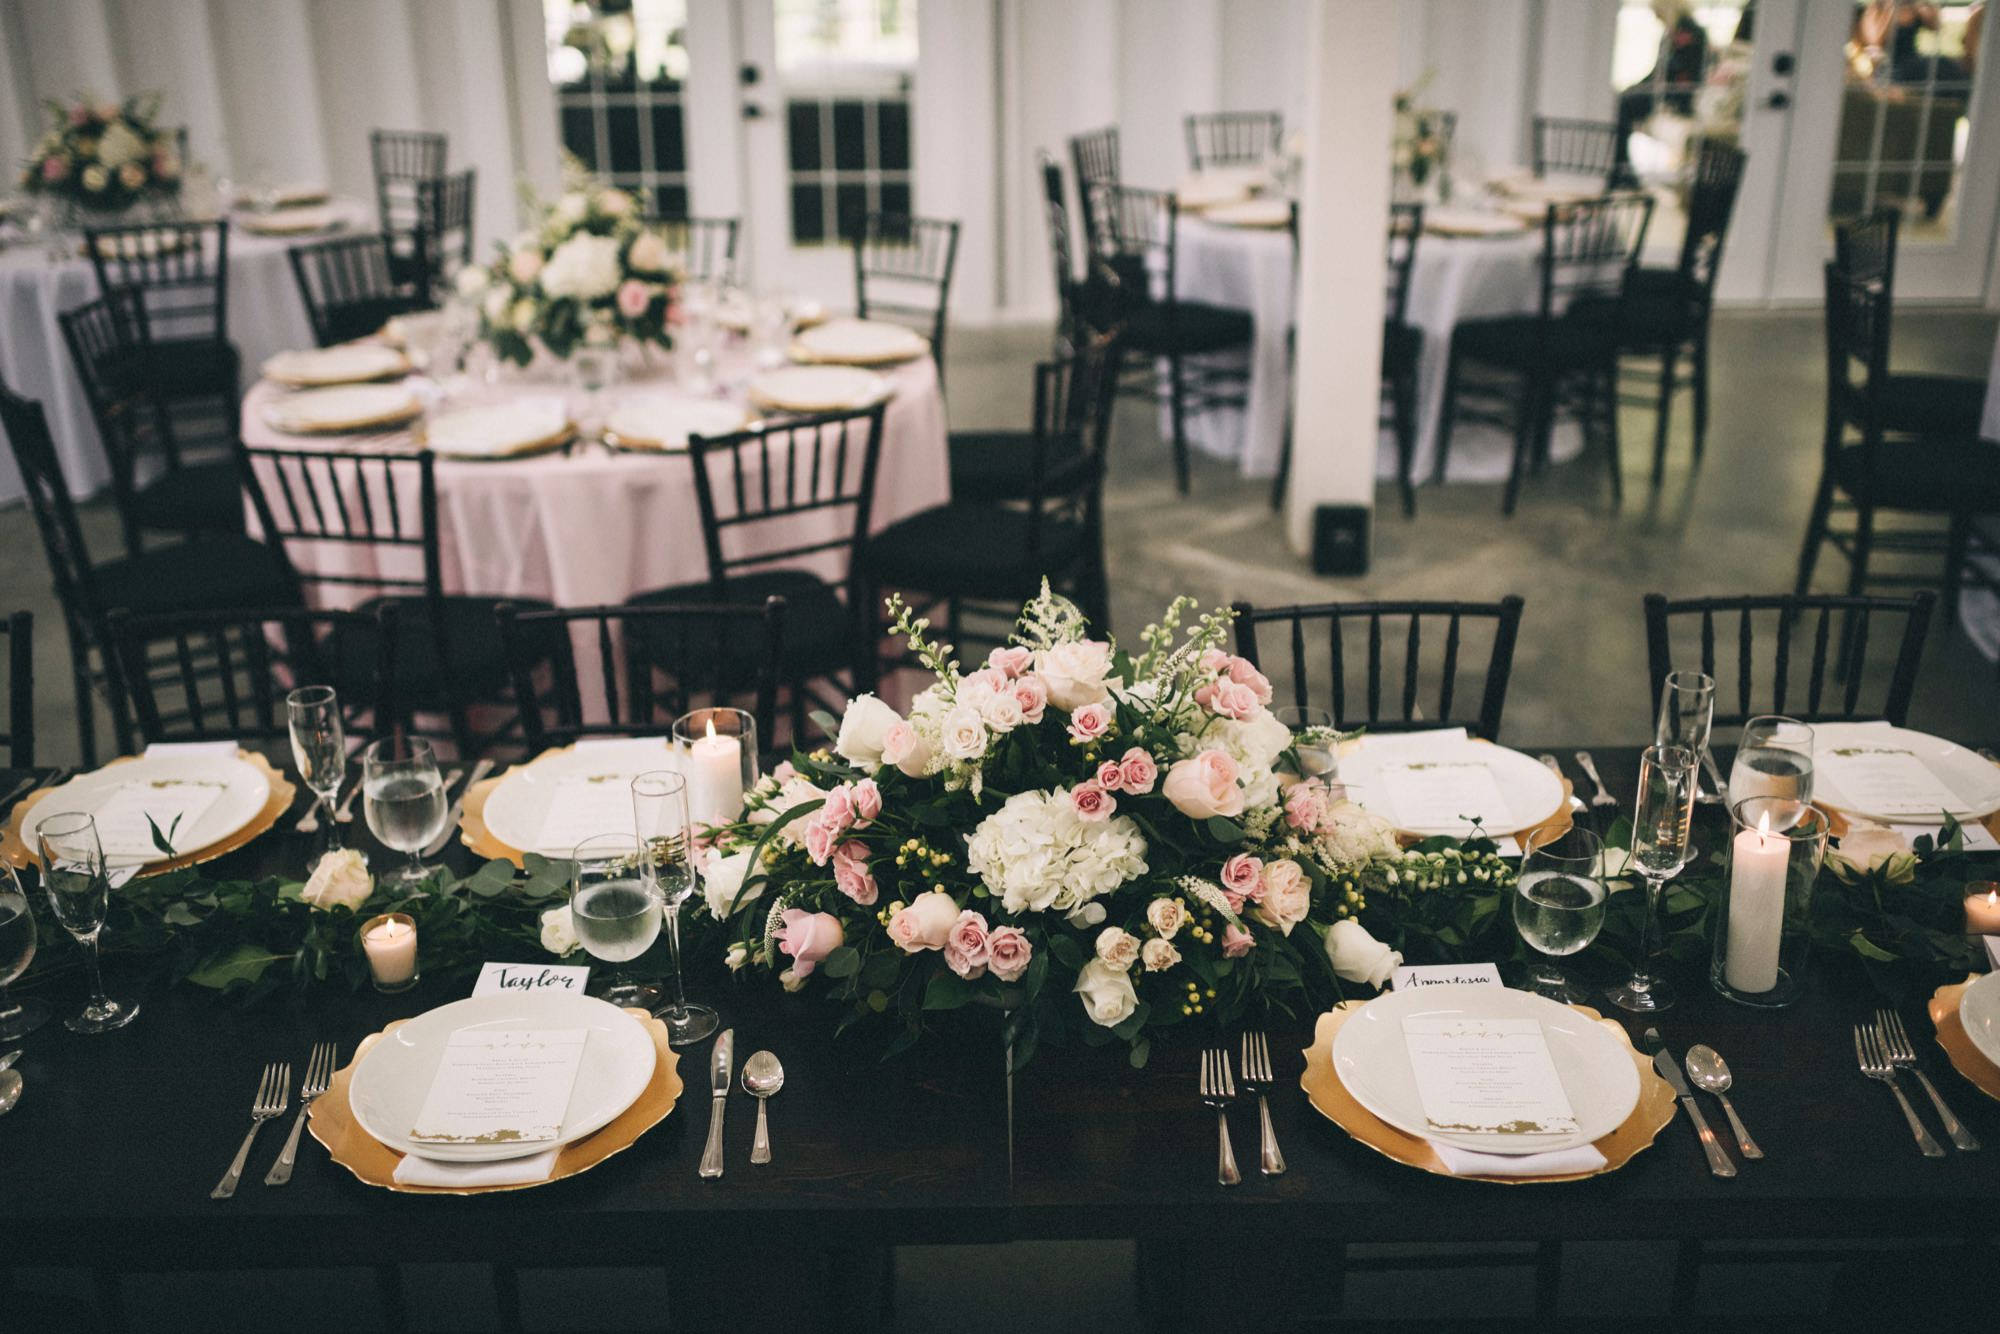 Romantic & Modern Historic Wedding at Kentucky's Ashford Acres Inn by Sarah Katherine Davis Photography